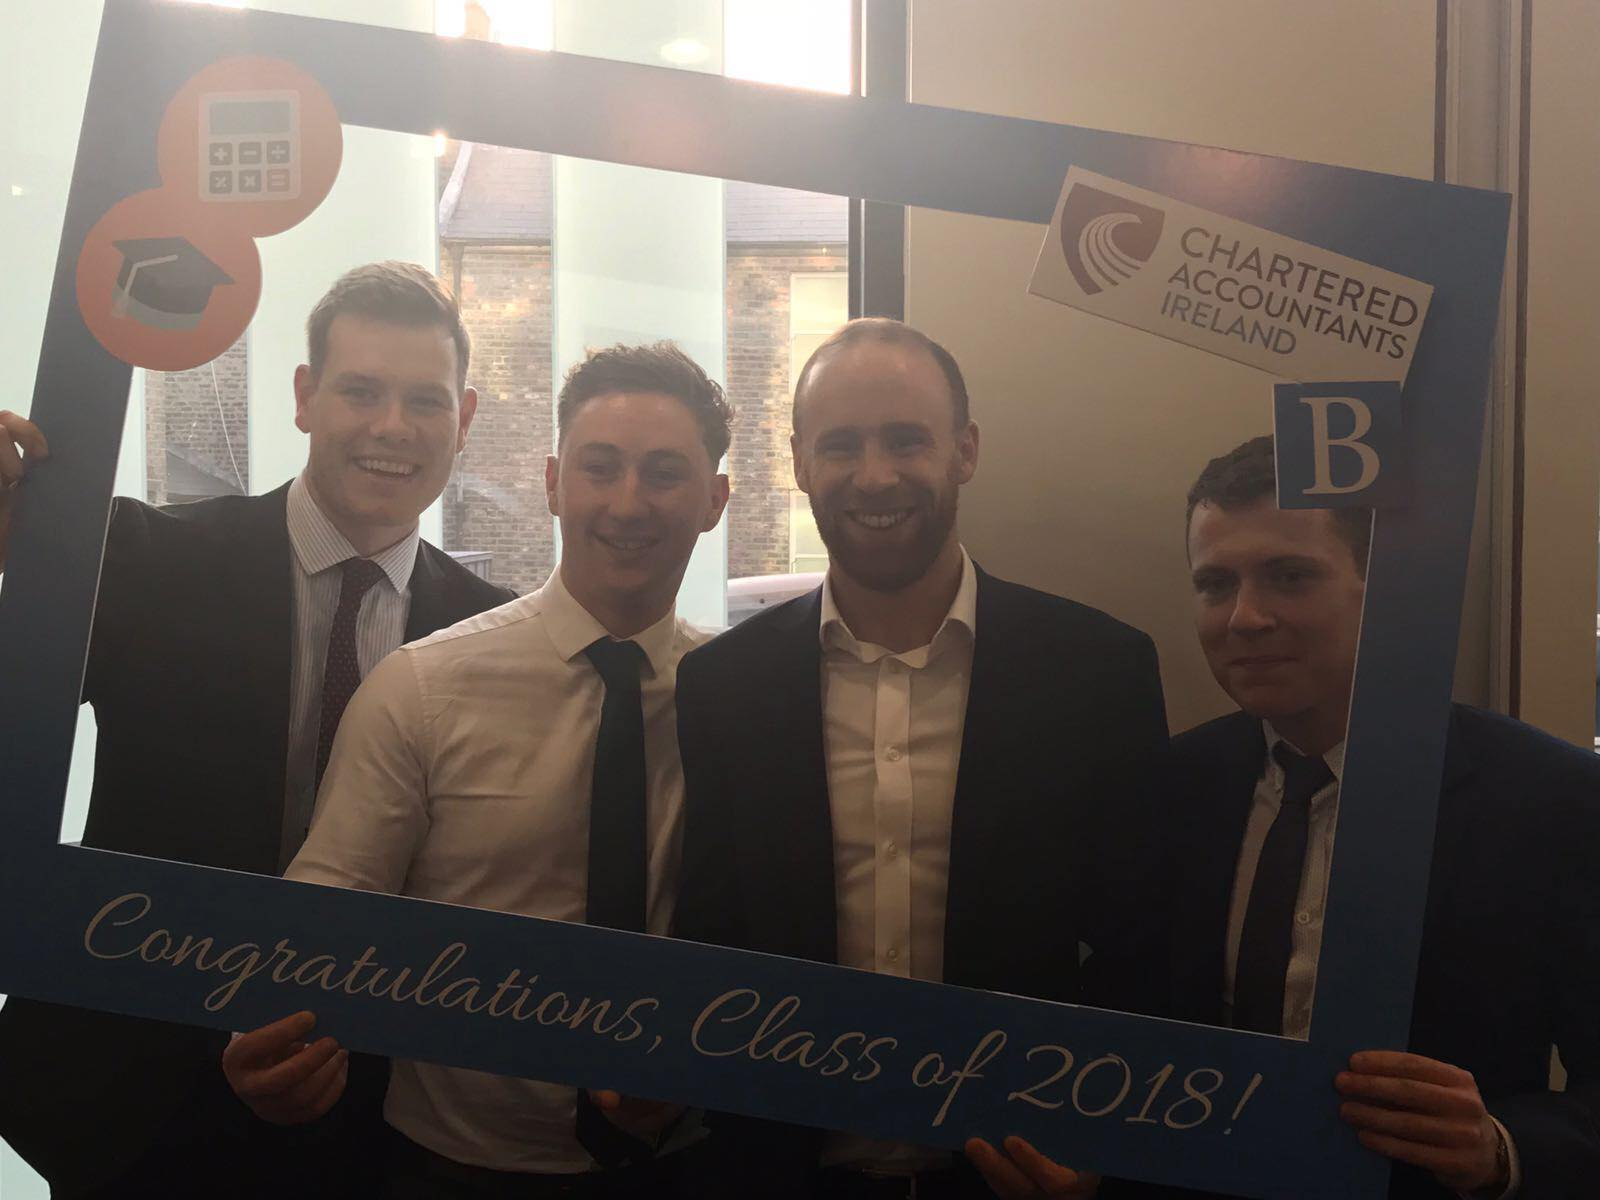 Conor Quaine, Niall Hession, Aidan Cash and Peter Glancy